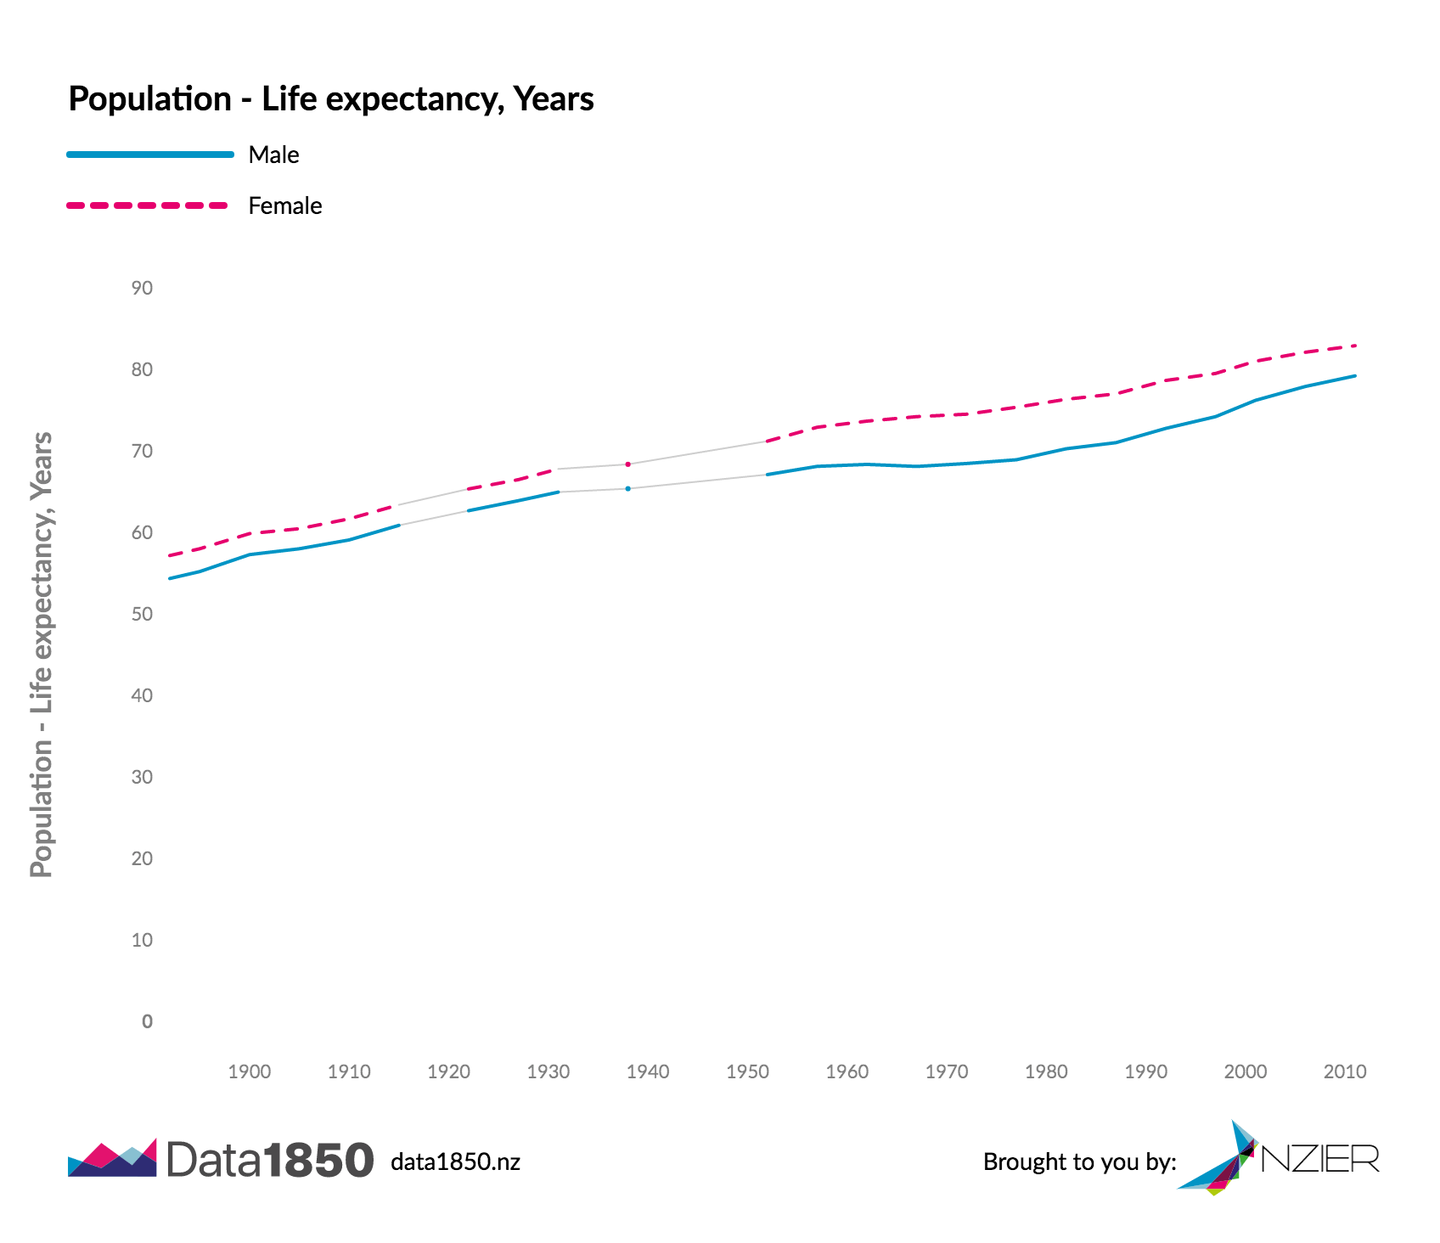 Life expectancy in NZ - NZIER Data1850